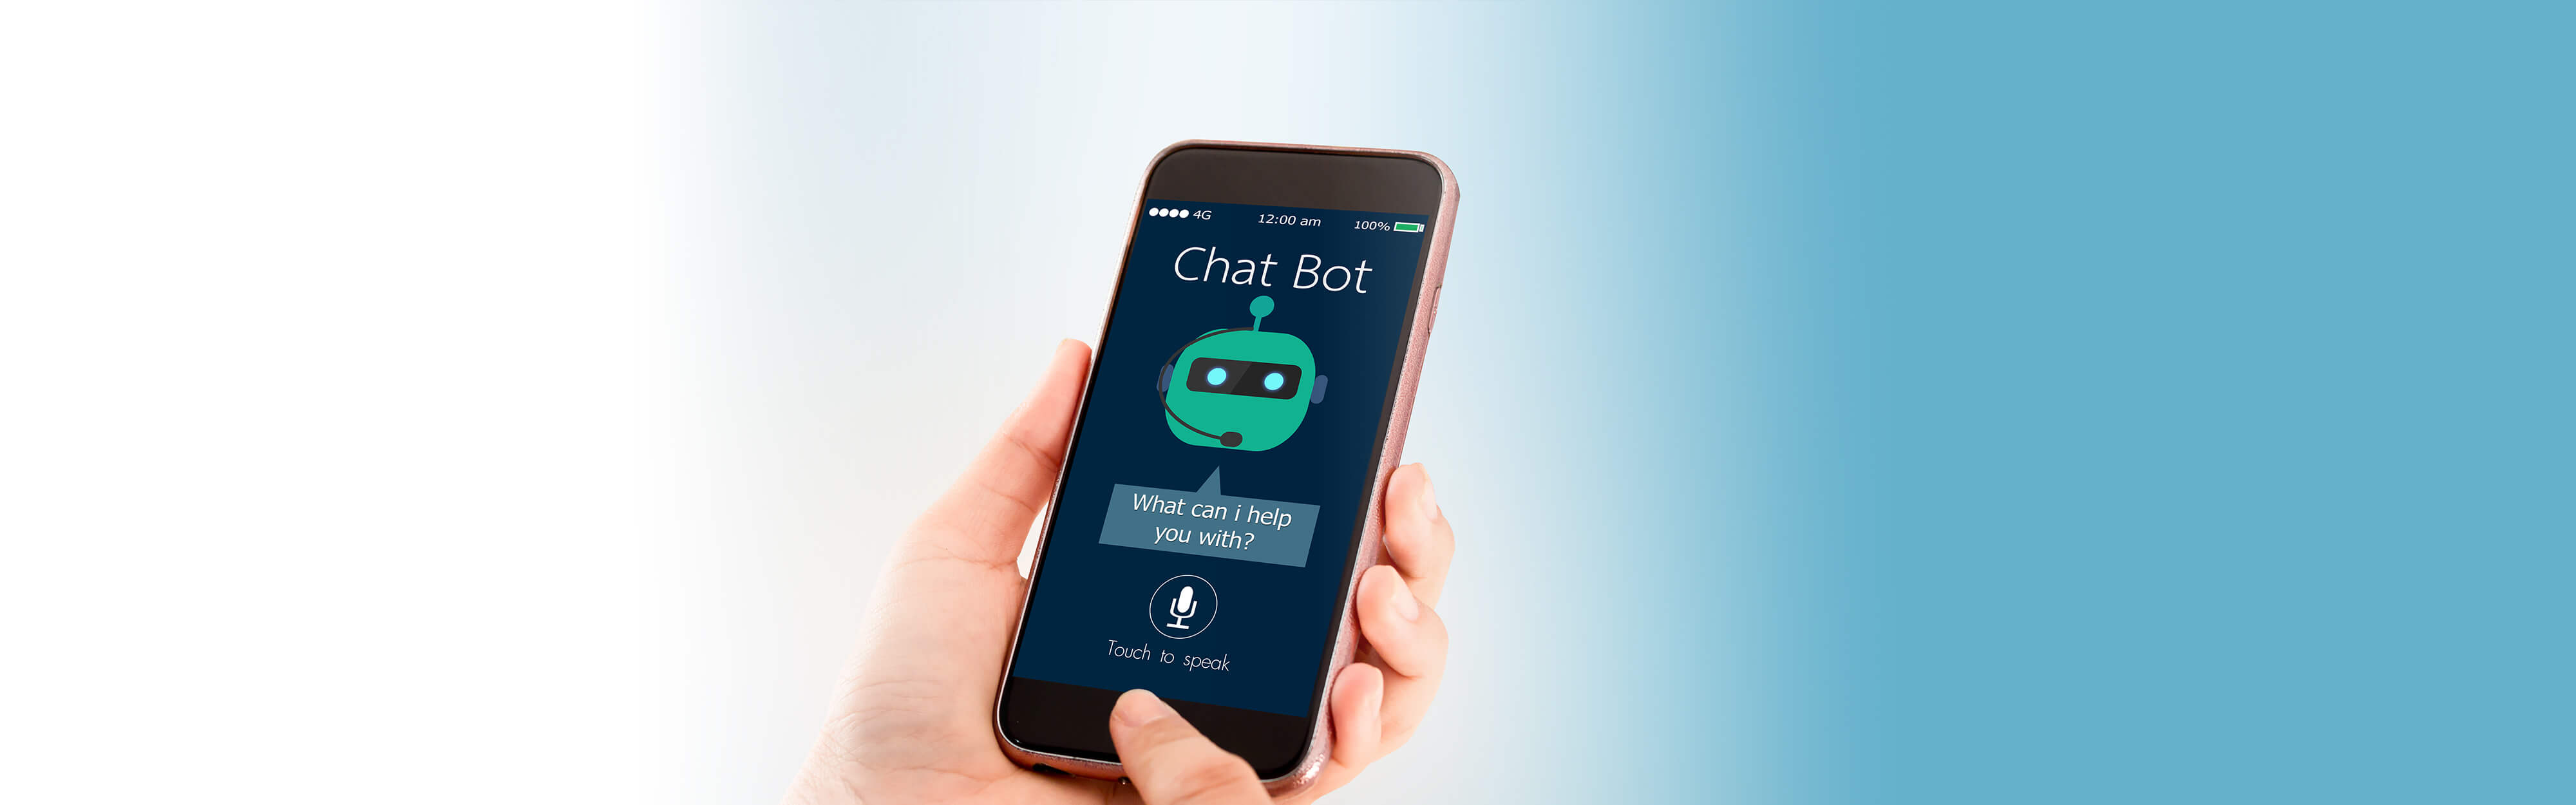 Implementing chatbots on PeopleSoft for enhanced operational efficiency and user experience